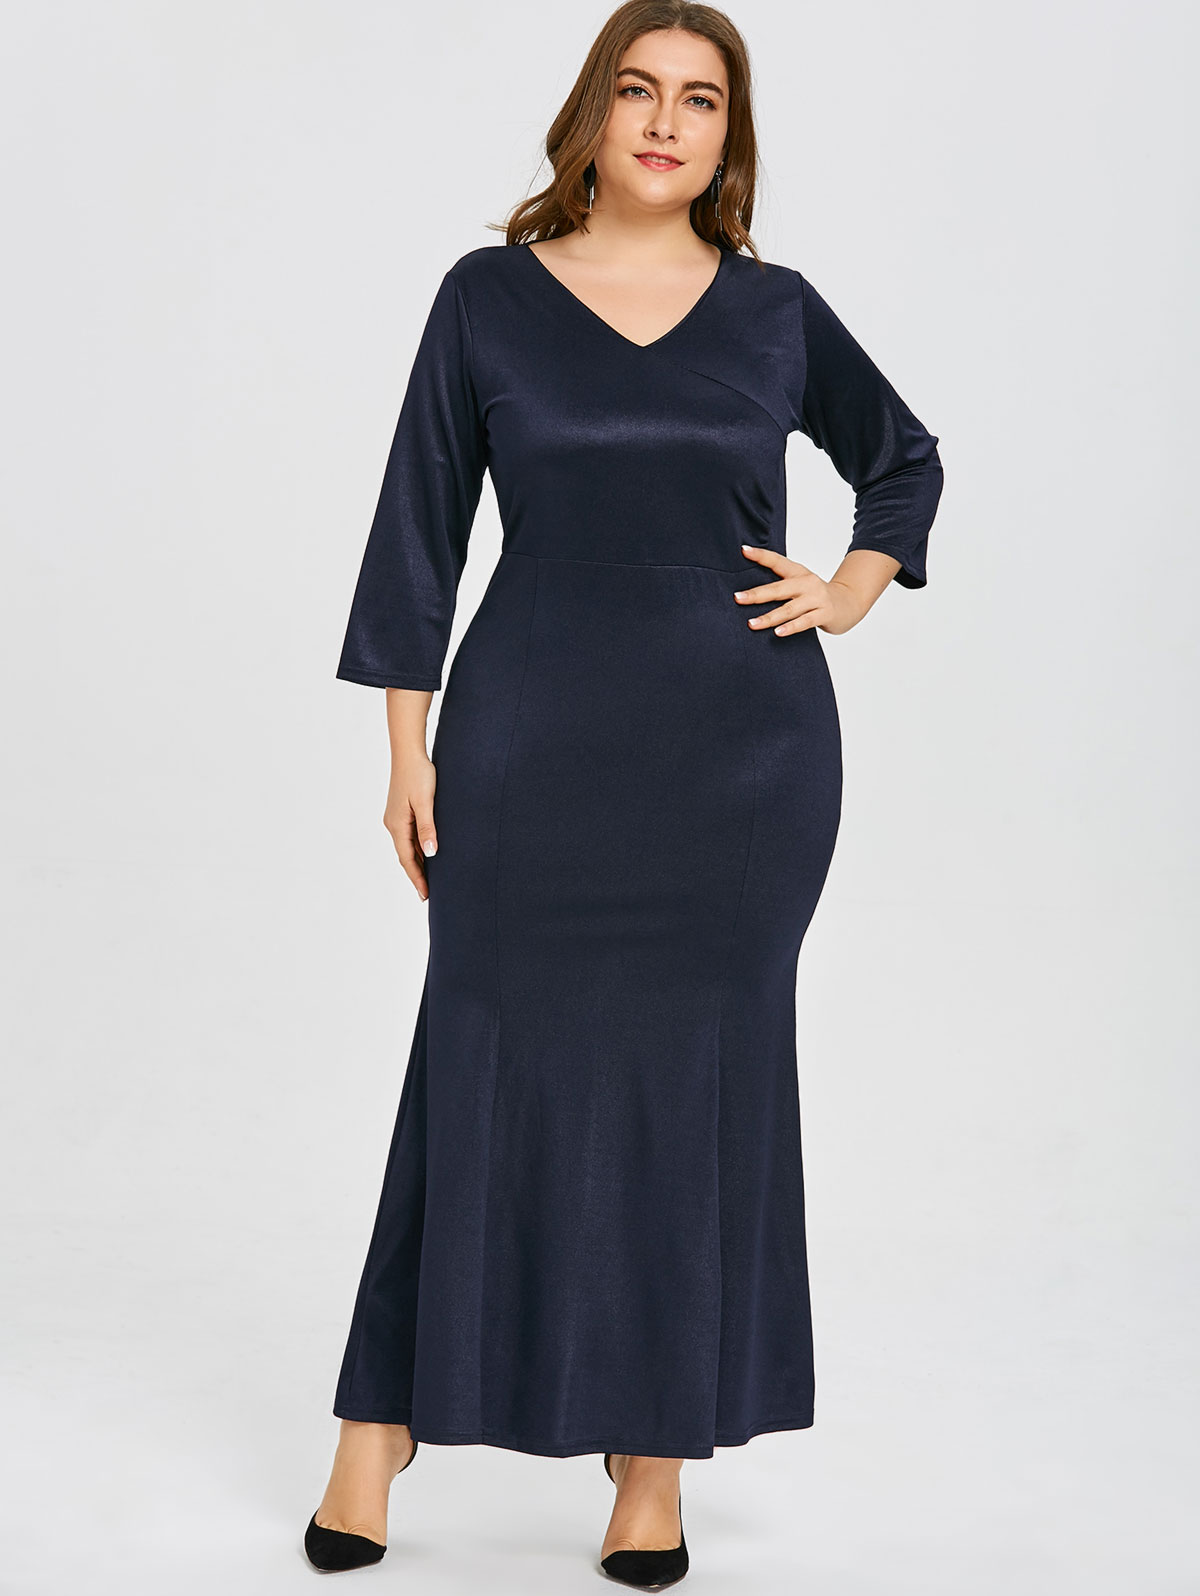 US $17.09 50% OFF|Wipalo Women Plus Size 6XL V Neck Mermaid Maxi Dress High  Waist Three Quarter Sleeves Solid Trumpet Party Dress Spring Vestidos-in ...